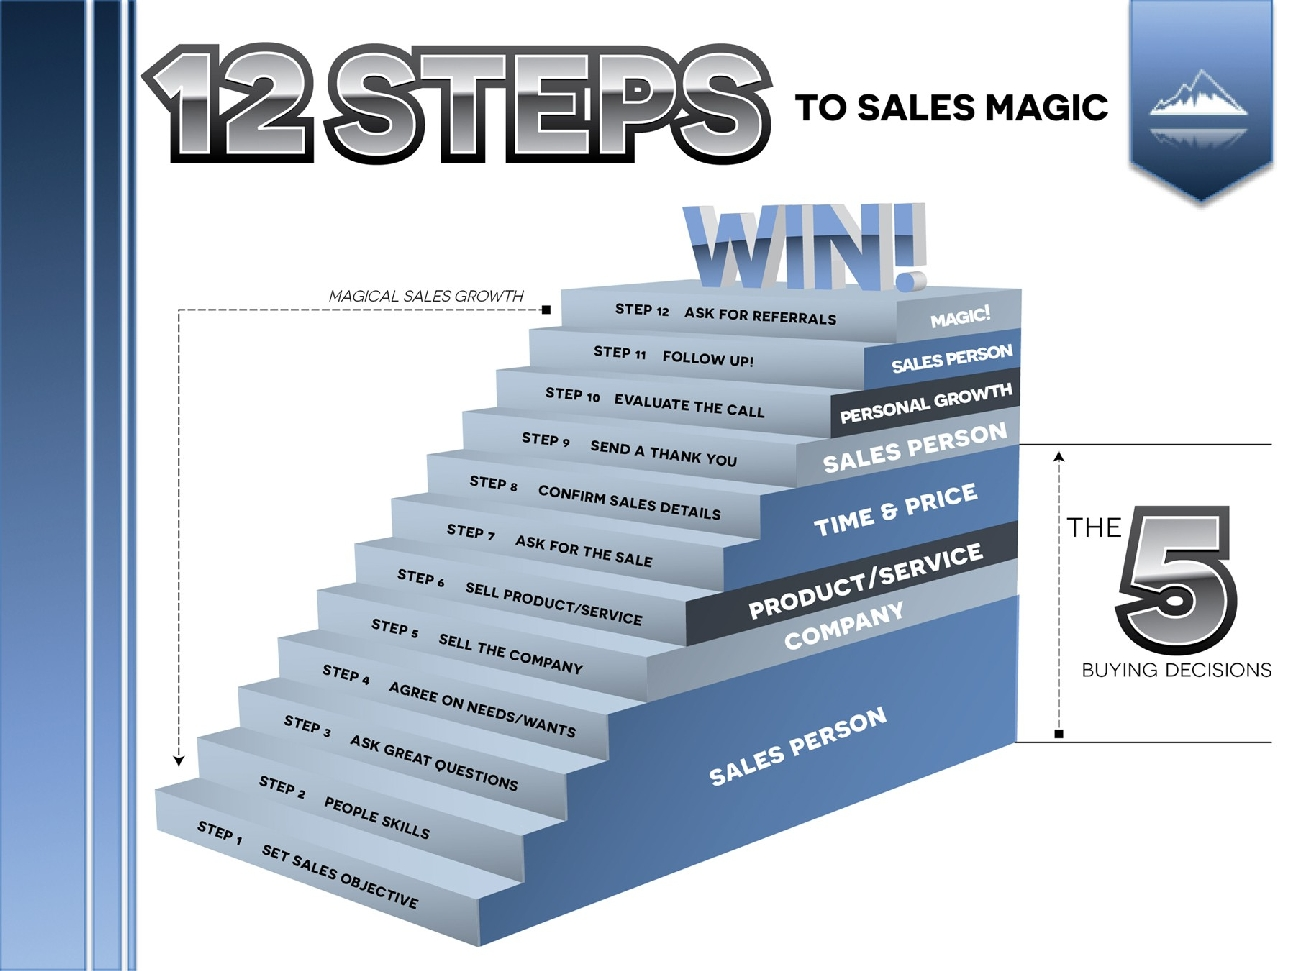 12 Steps to Sales Magic